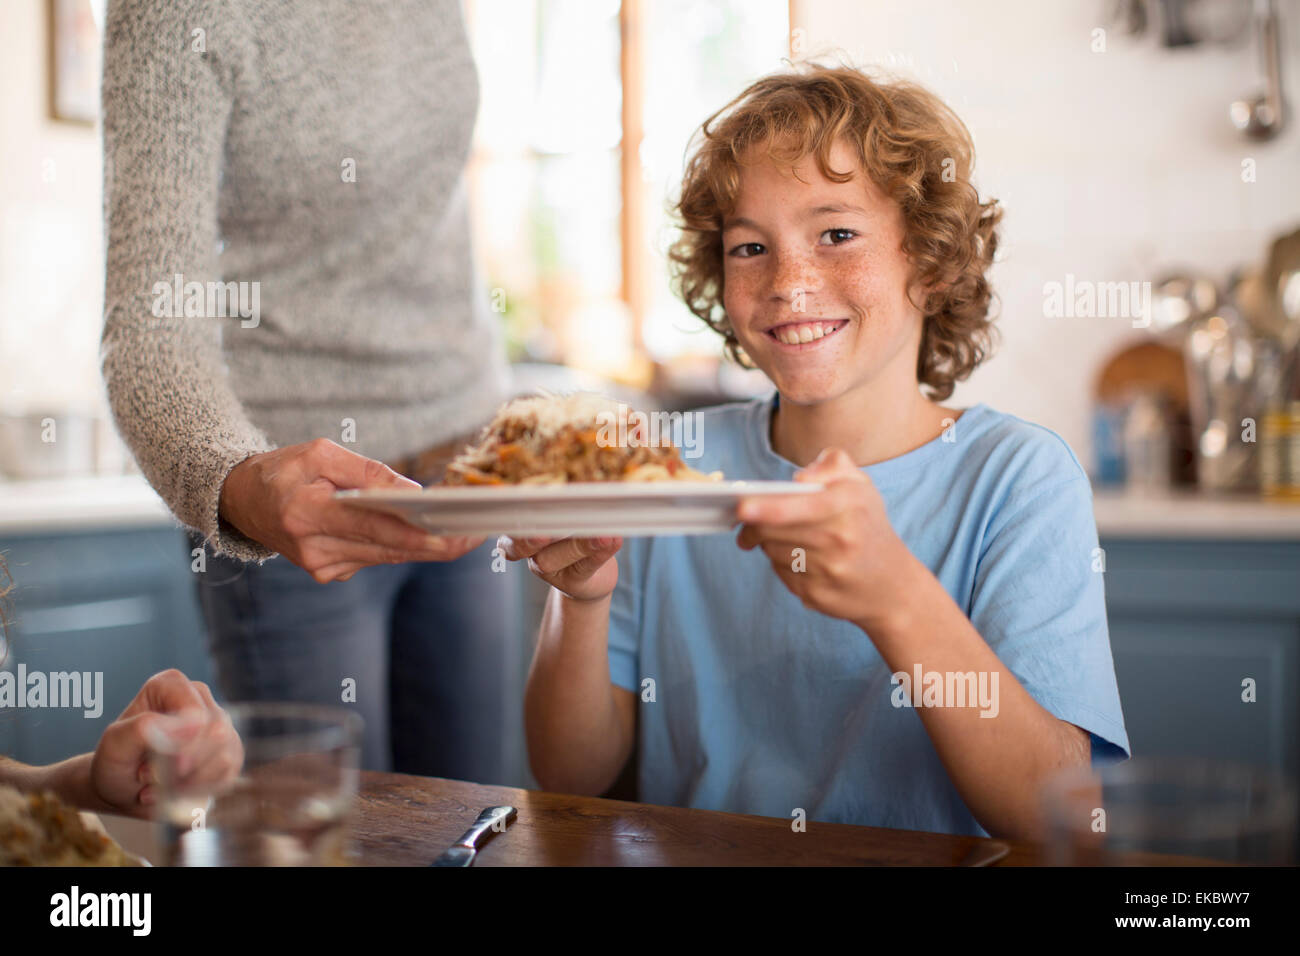 Mother serving spaghetti to children at dining table - Stock Image